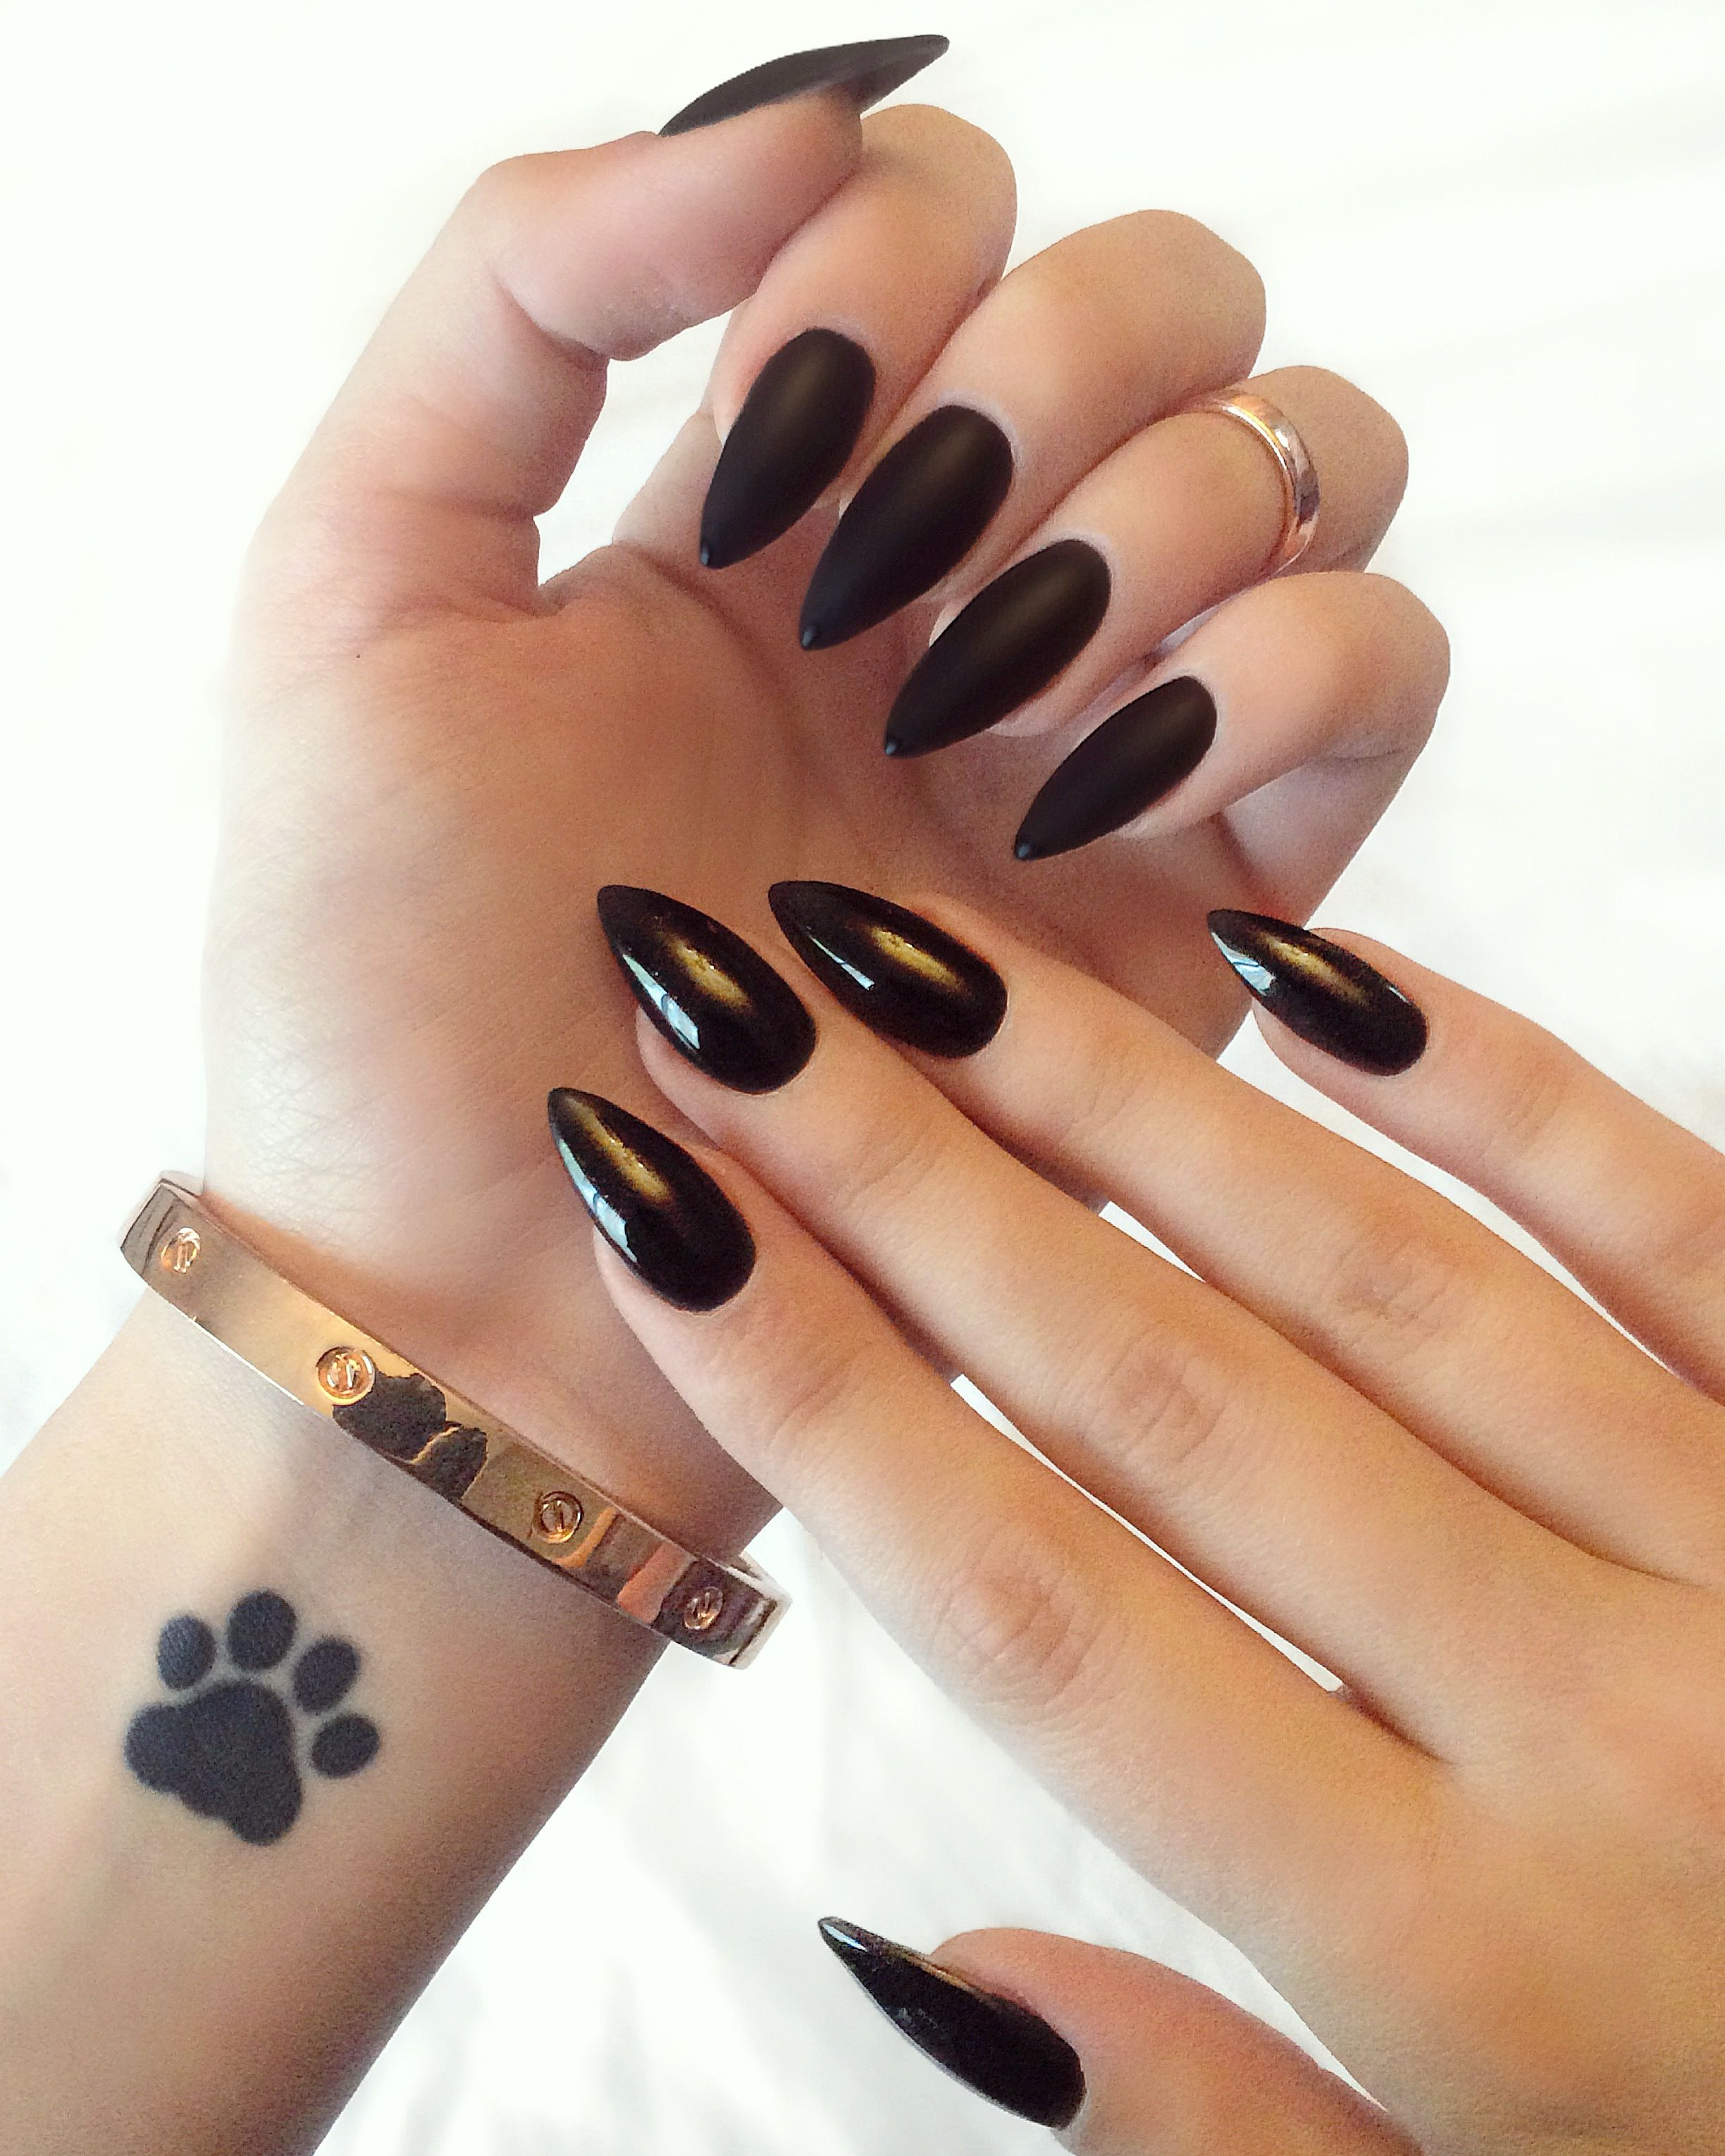 Glossy and matte black stiletto nails | Fall 2017 | Pinterest ...